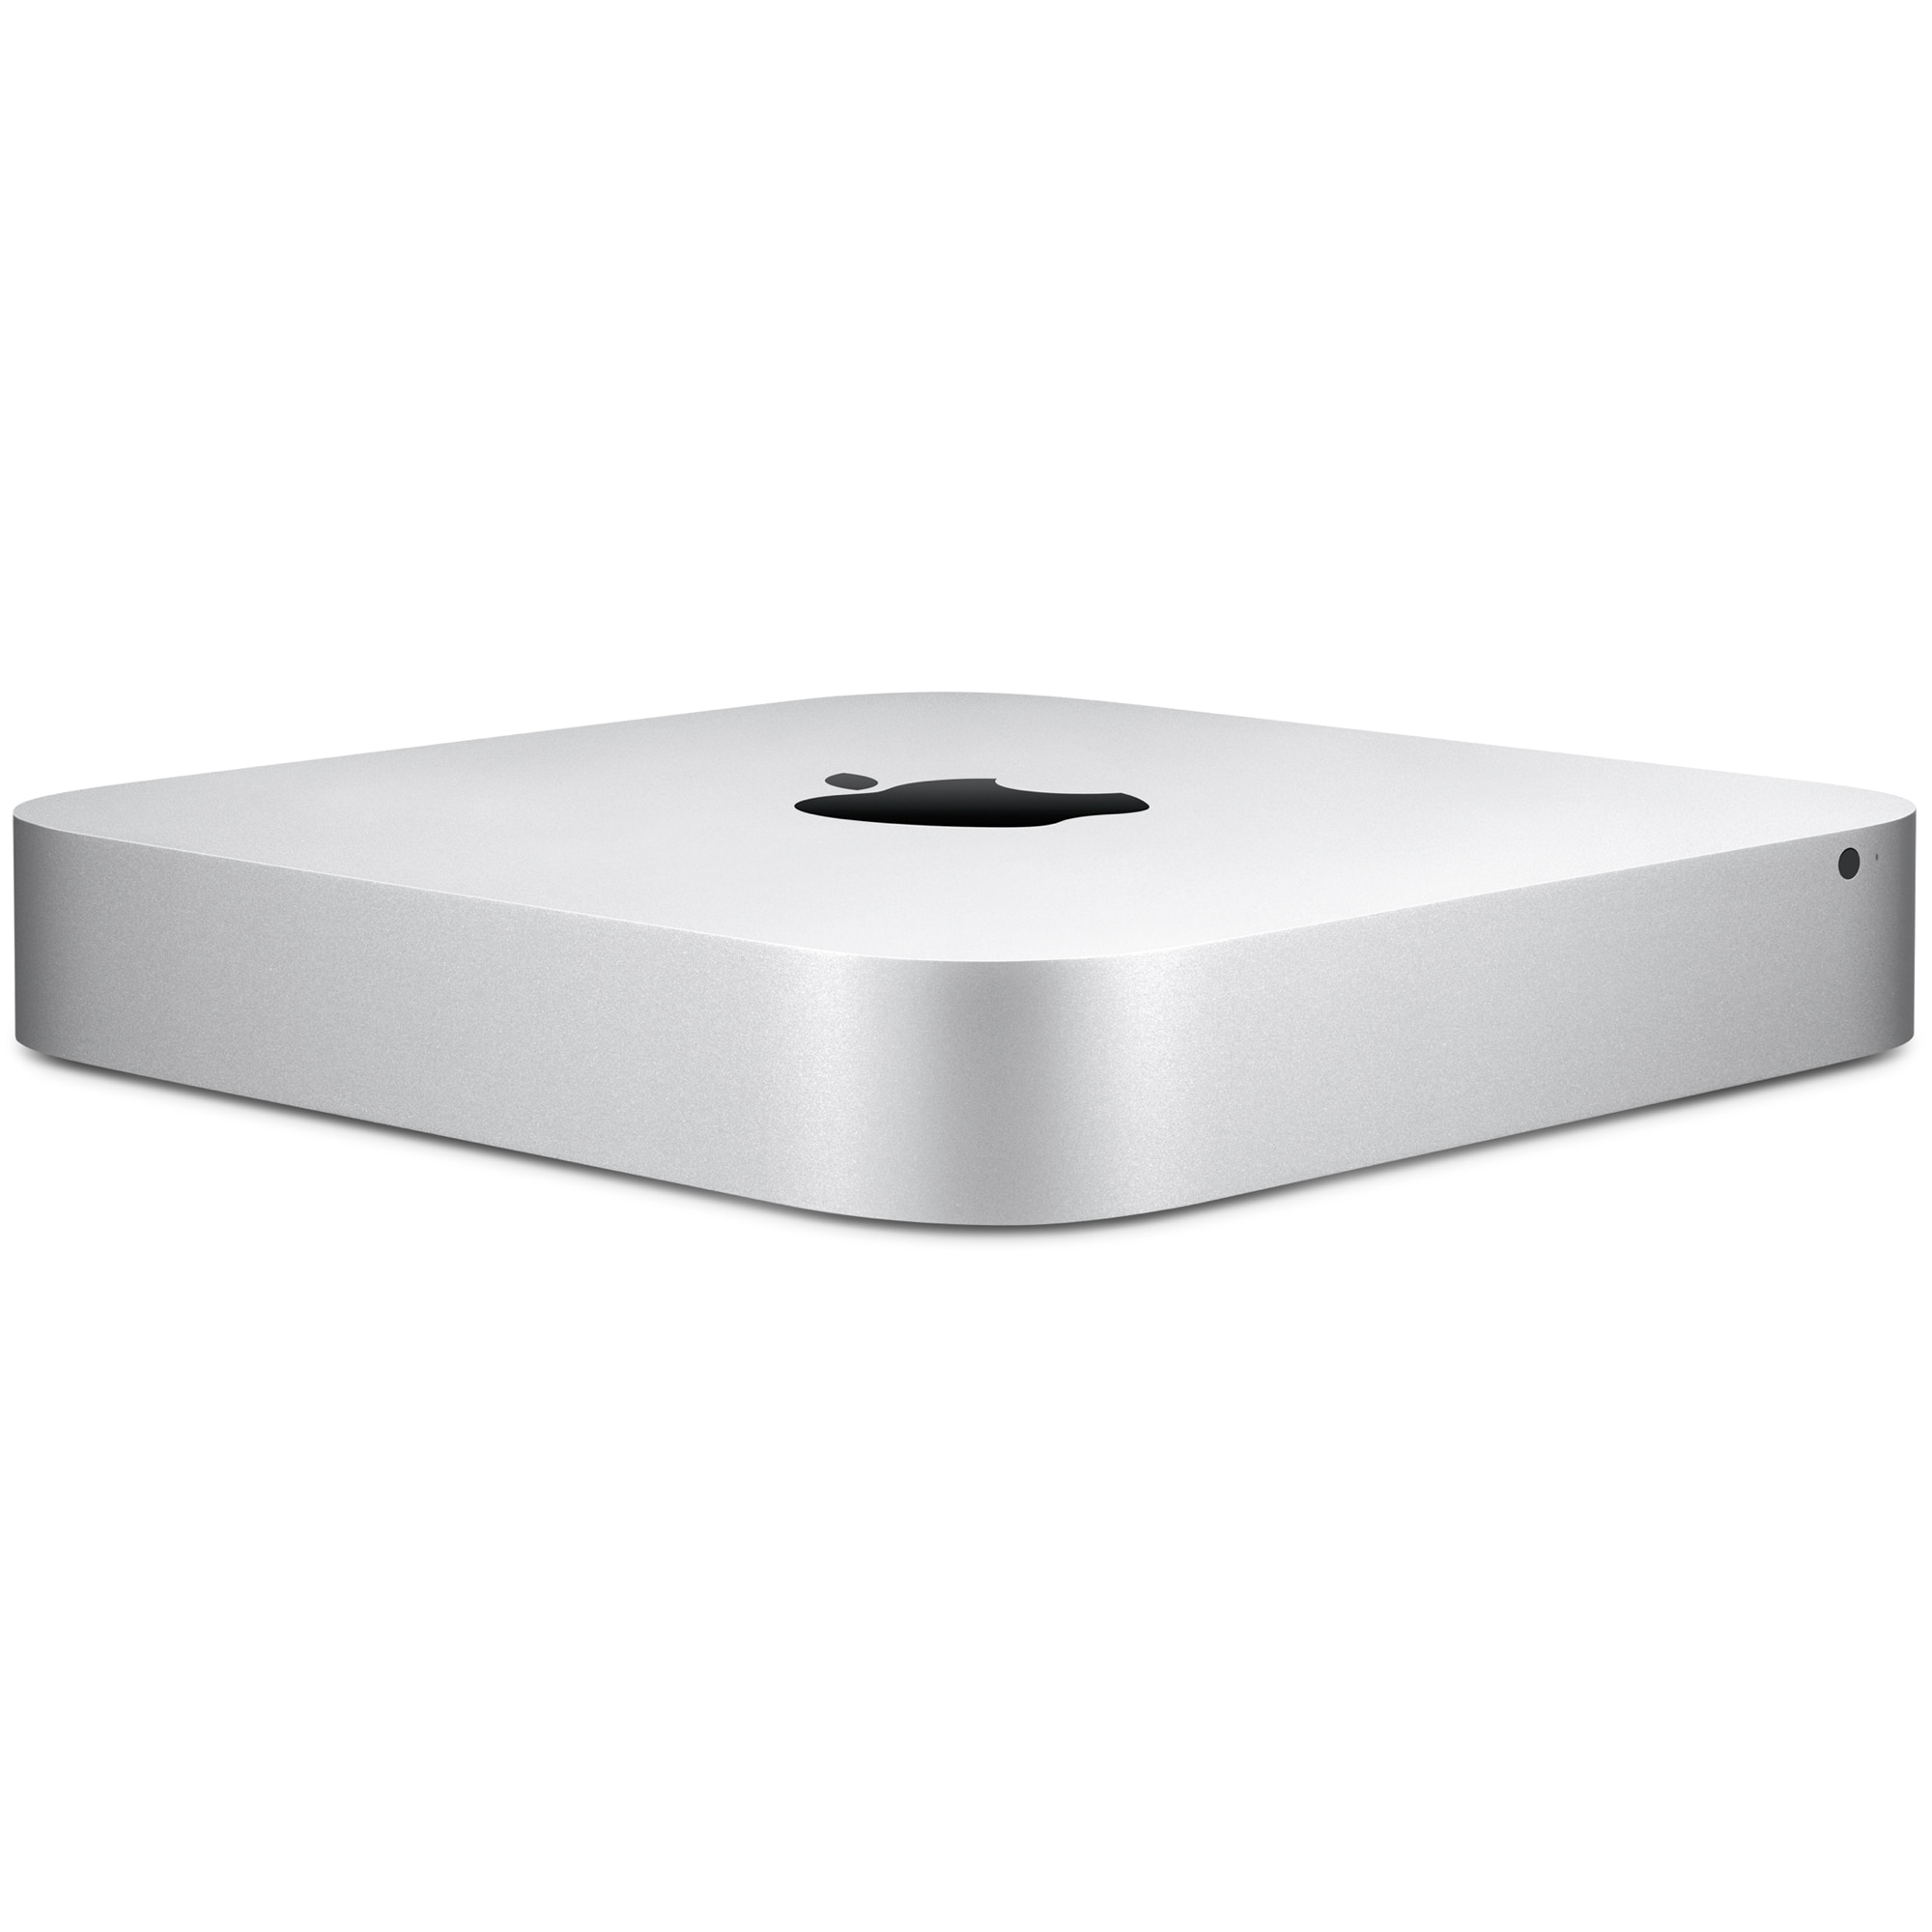 Fotografie Mac Mini PC Apple cu procesor Intel® Dual Core™ i5 1.40 GHz, 4GB, 500GB, Intel® HD Graphics, OS X Yosemite